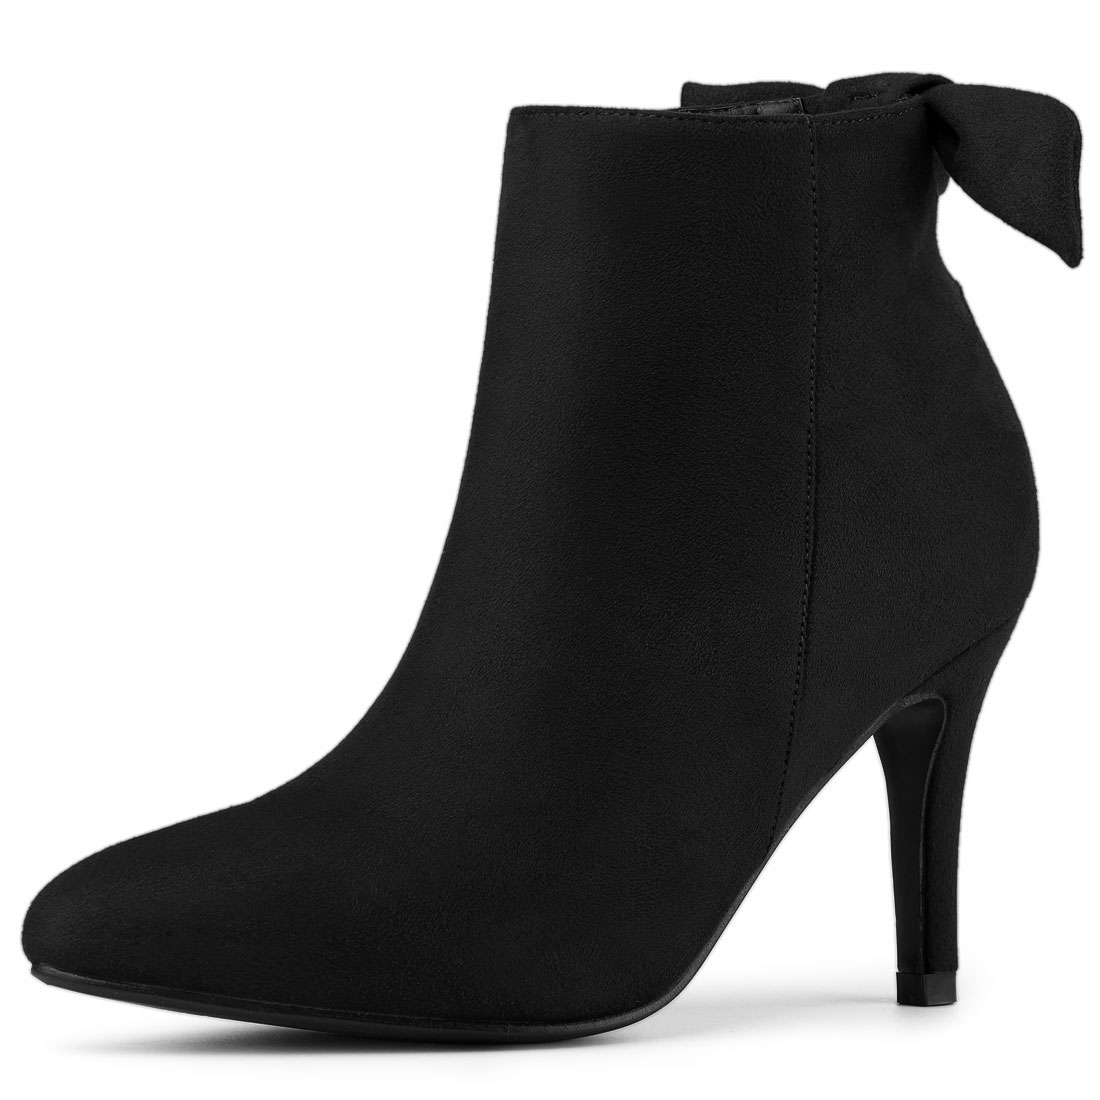 Allegra K Women's Pointed Toe Stiletto Heel Ankle Boots Black US 9.5